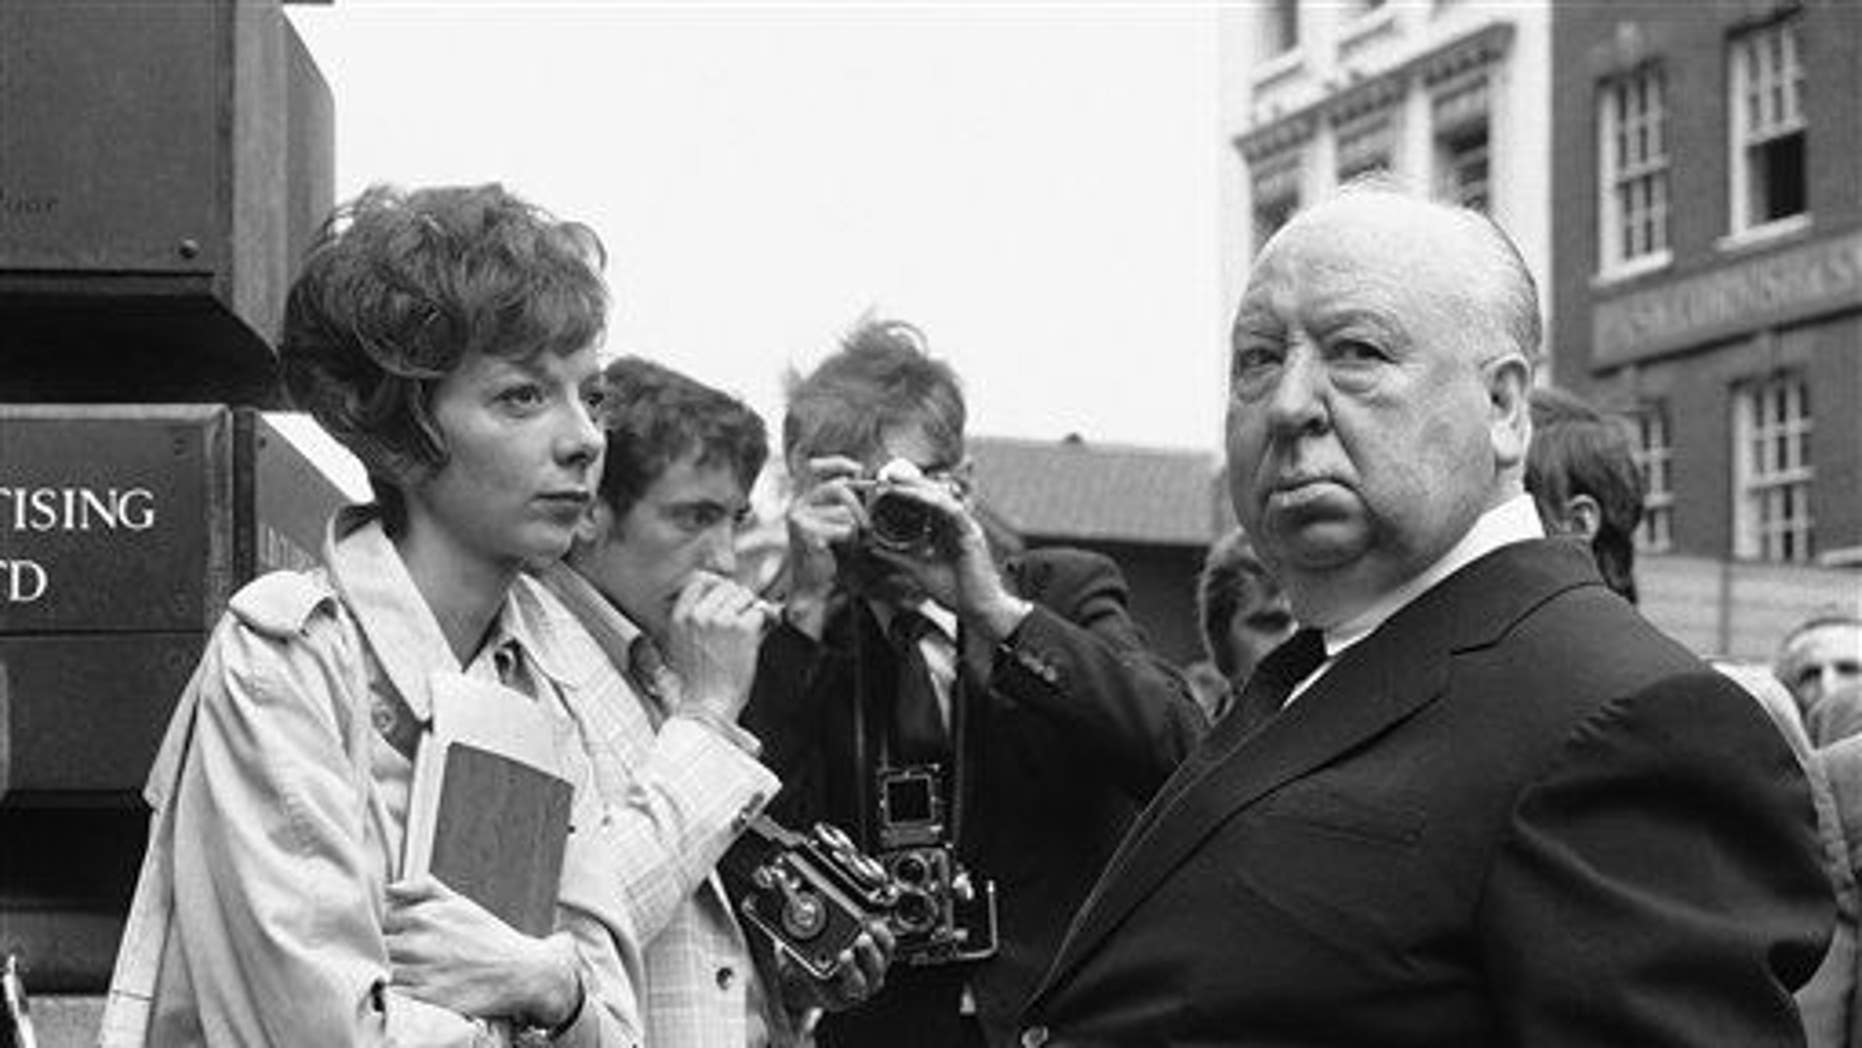 """In this July 26, 1971 file photo, British film producer and director Alfred Hitchcock, right, discusses filming with actress Anna Massey, one of the stars of """"Frenzy"""", in Covent Garden Market, London."""